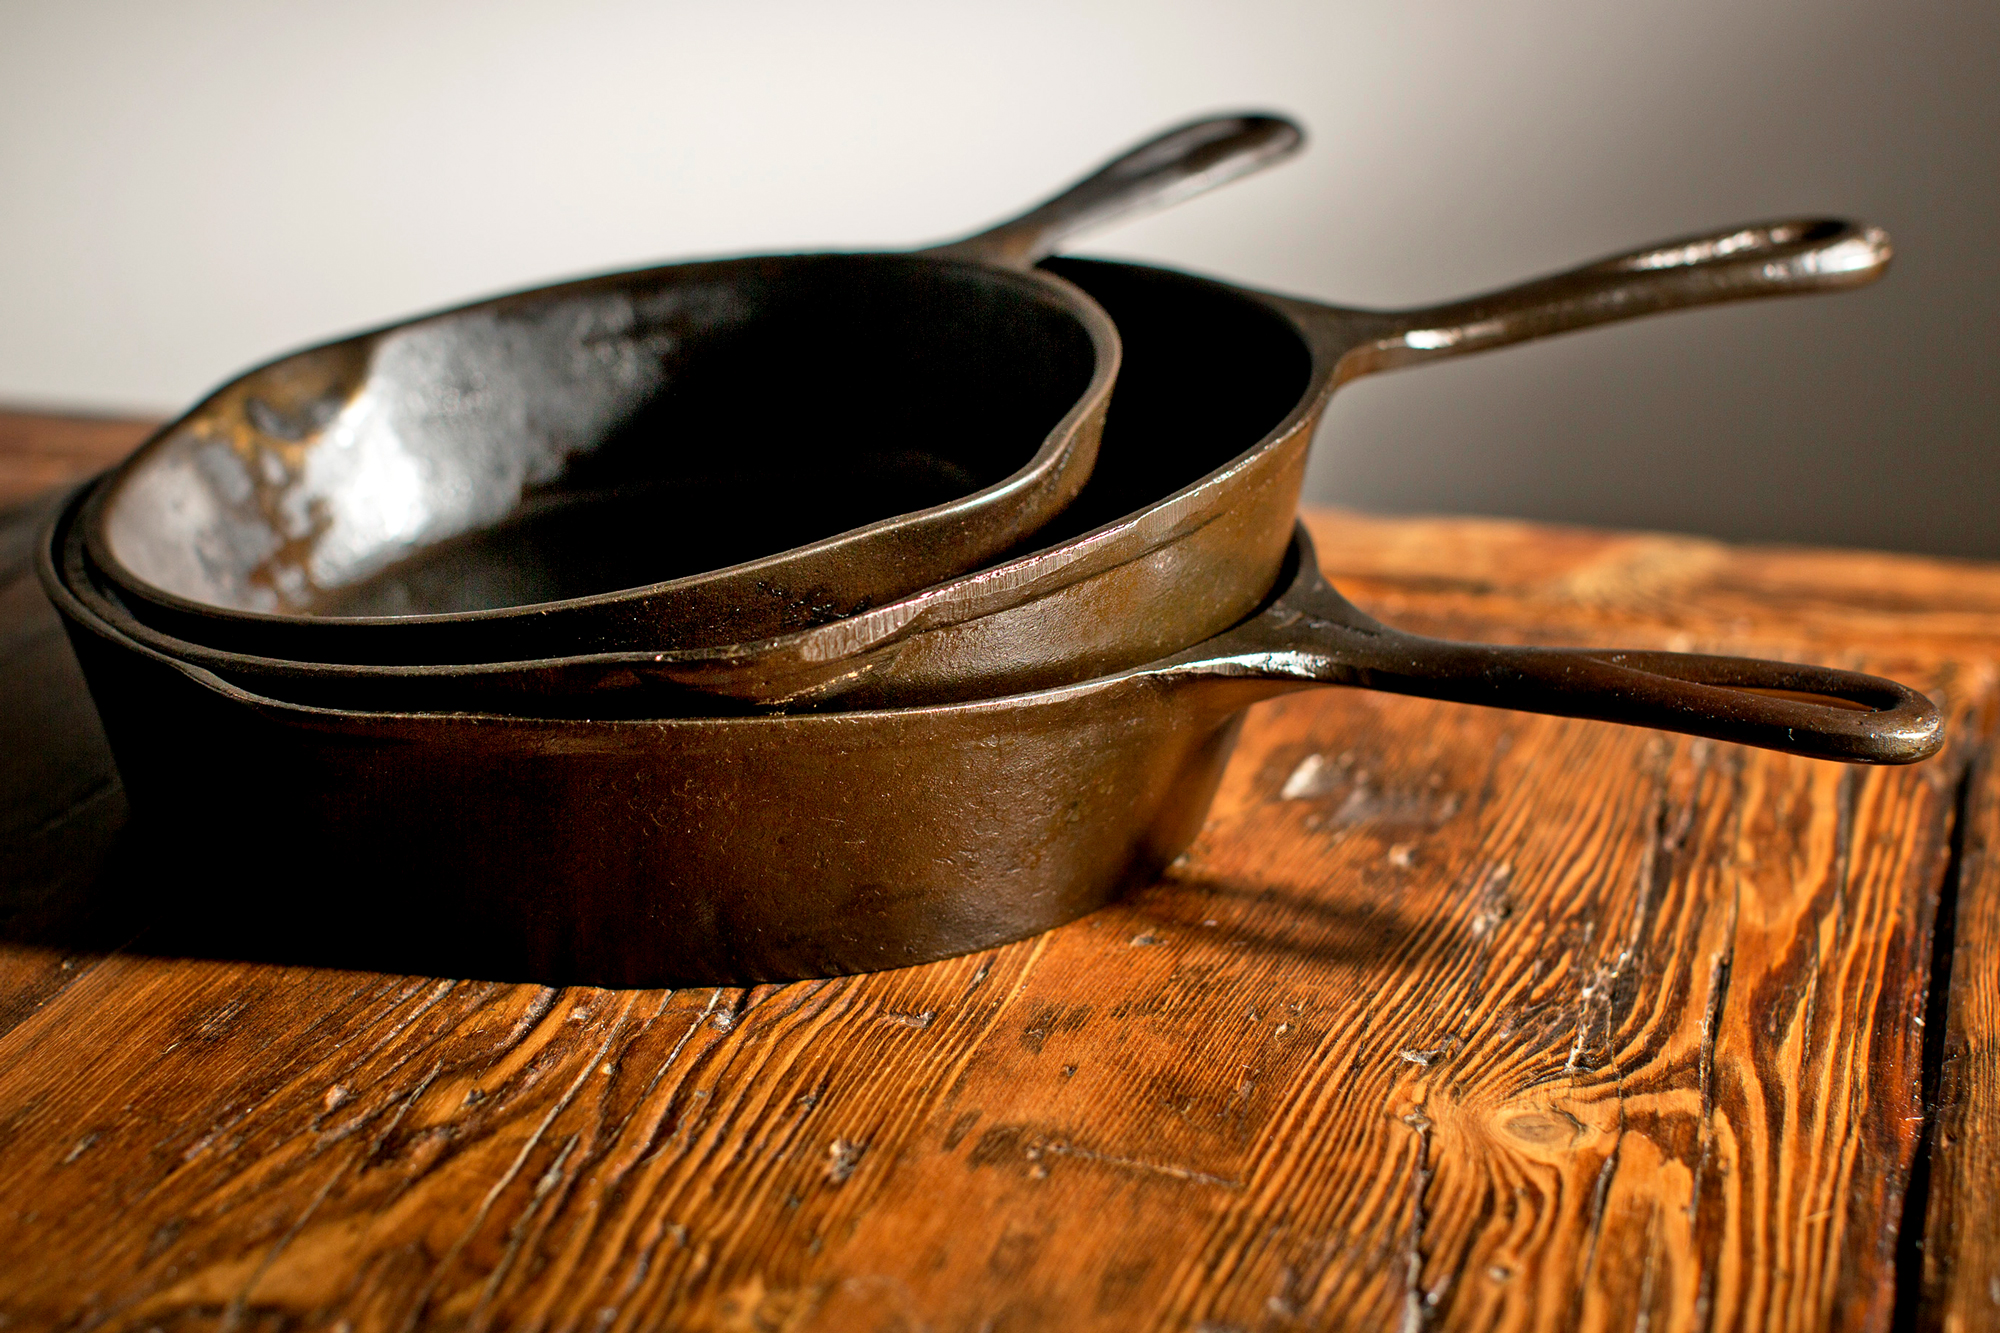 How to Take care of your Pioneer Woman Pots and Pans